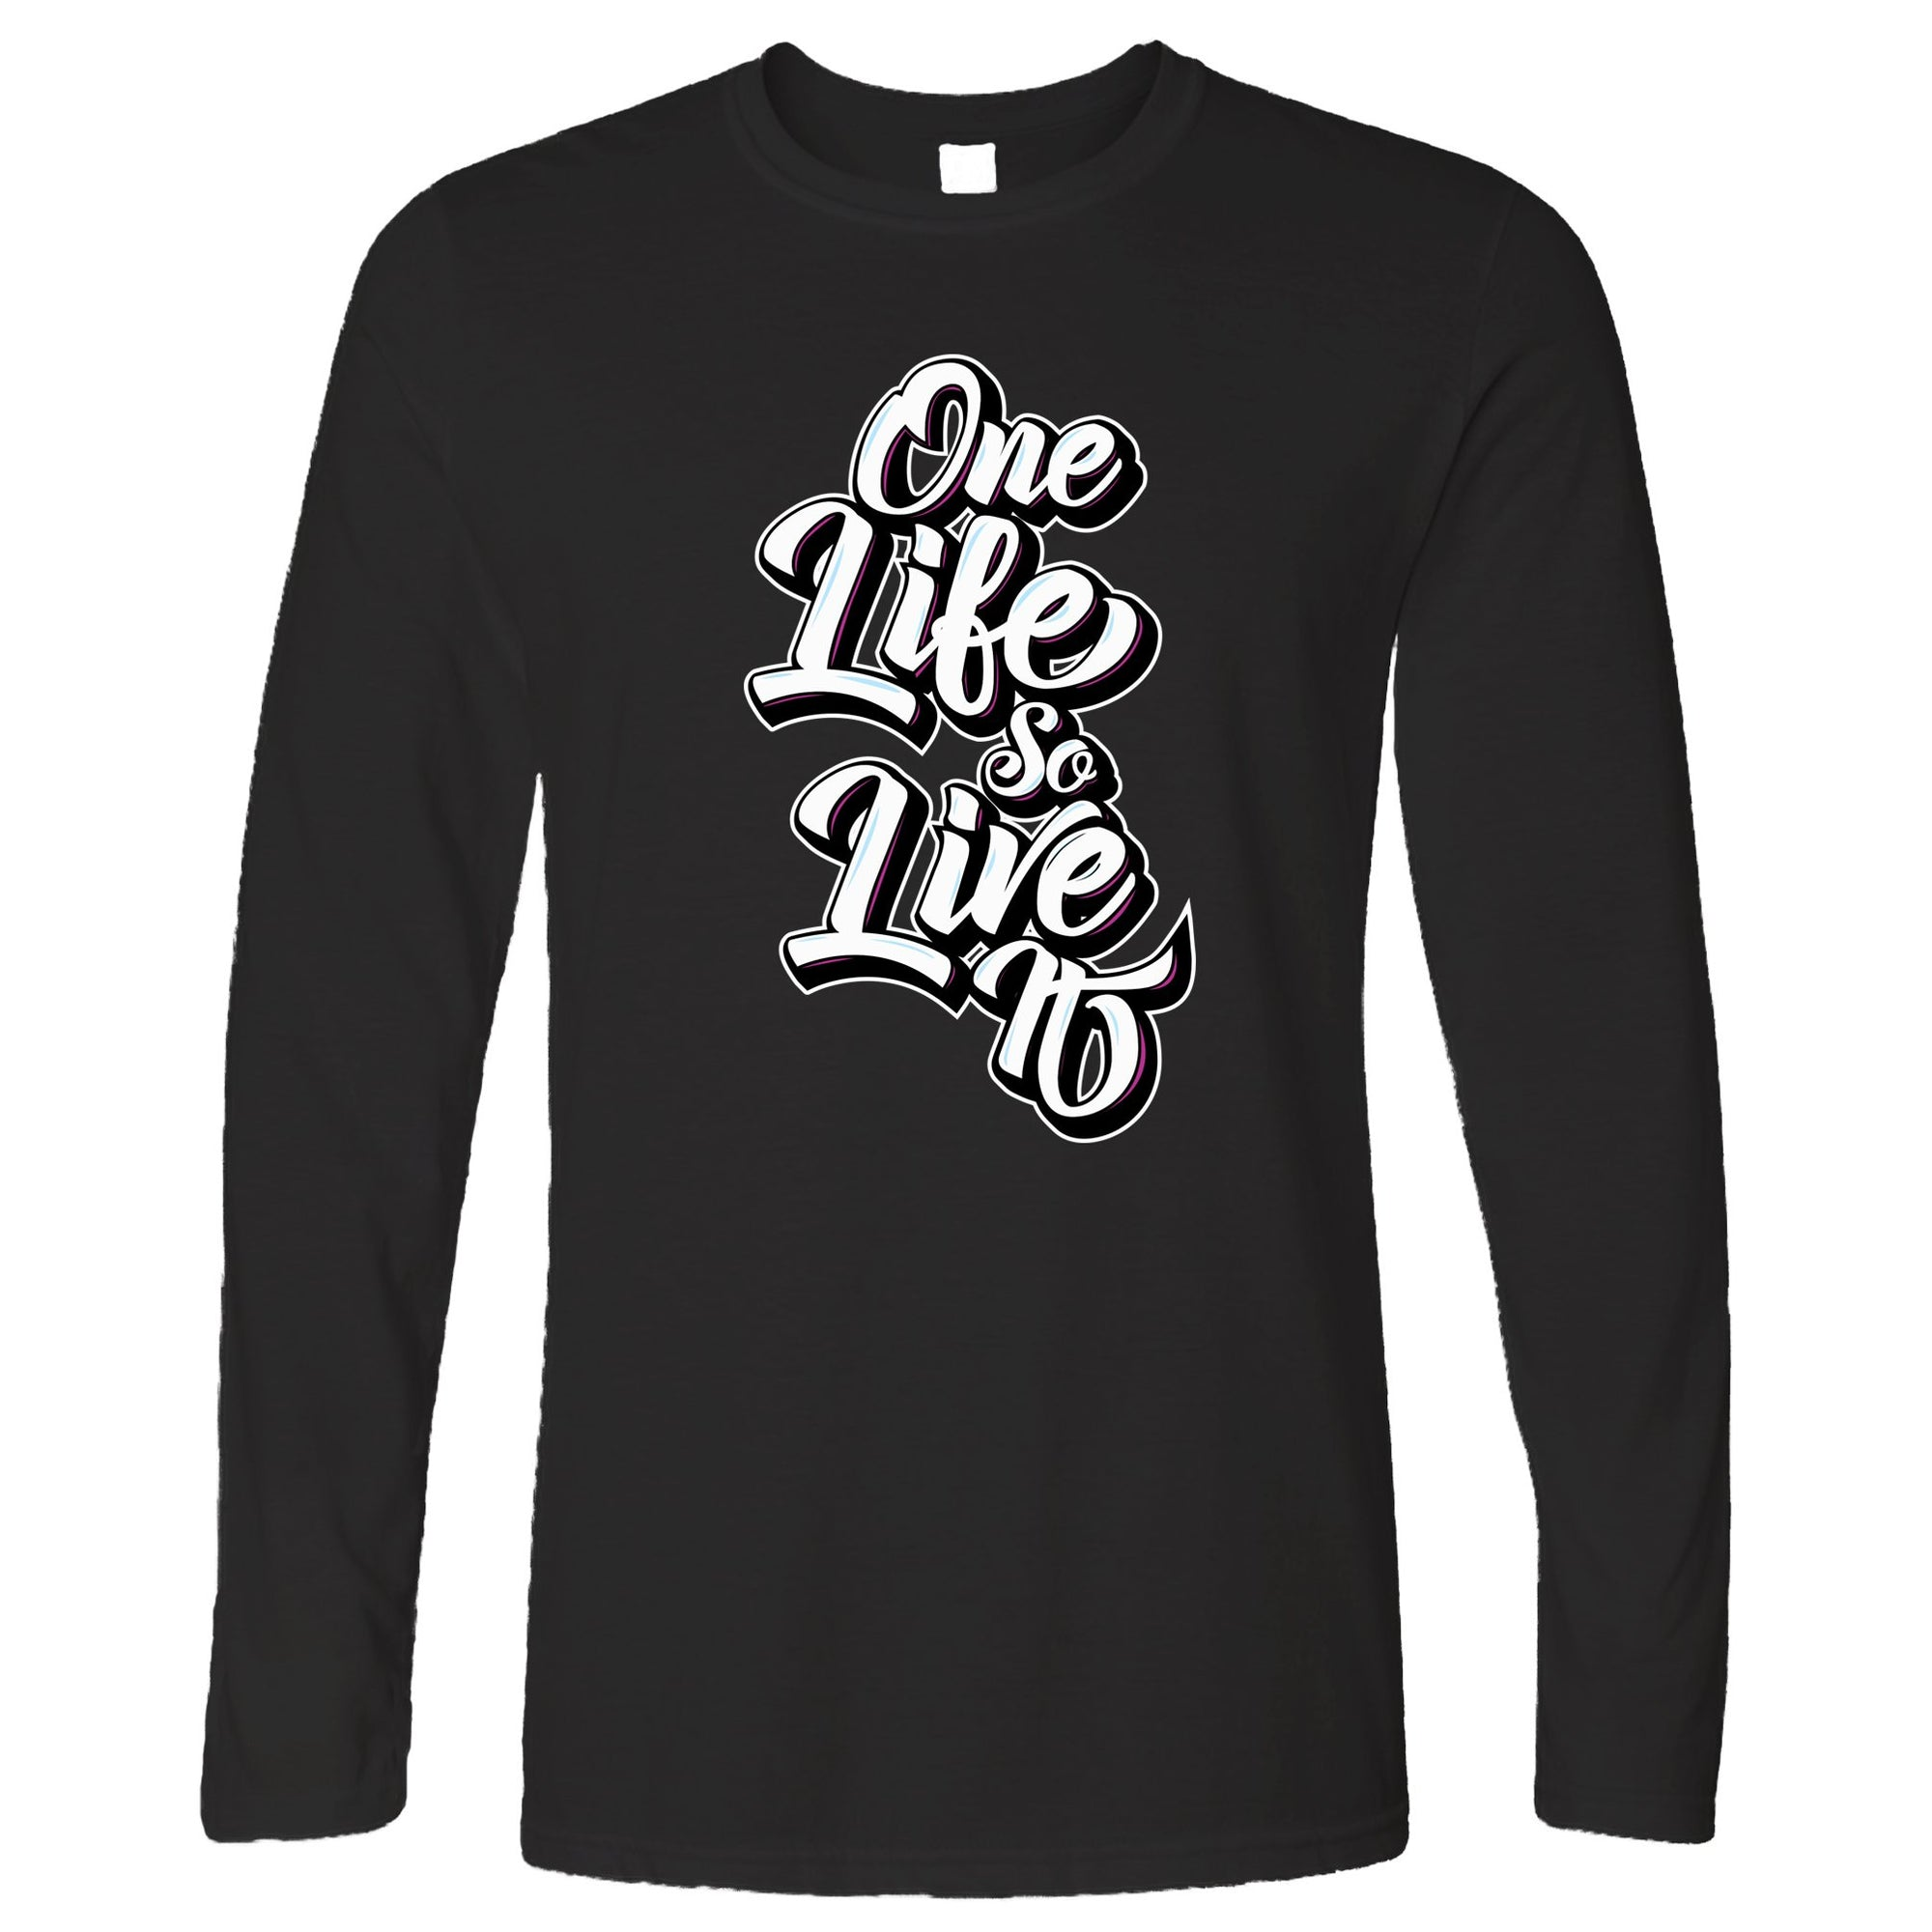 Inspirational Long Sleeve You Have One Life, So Live It